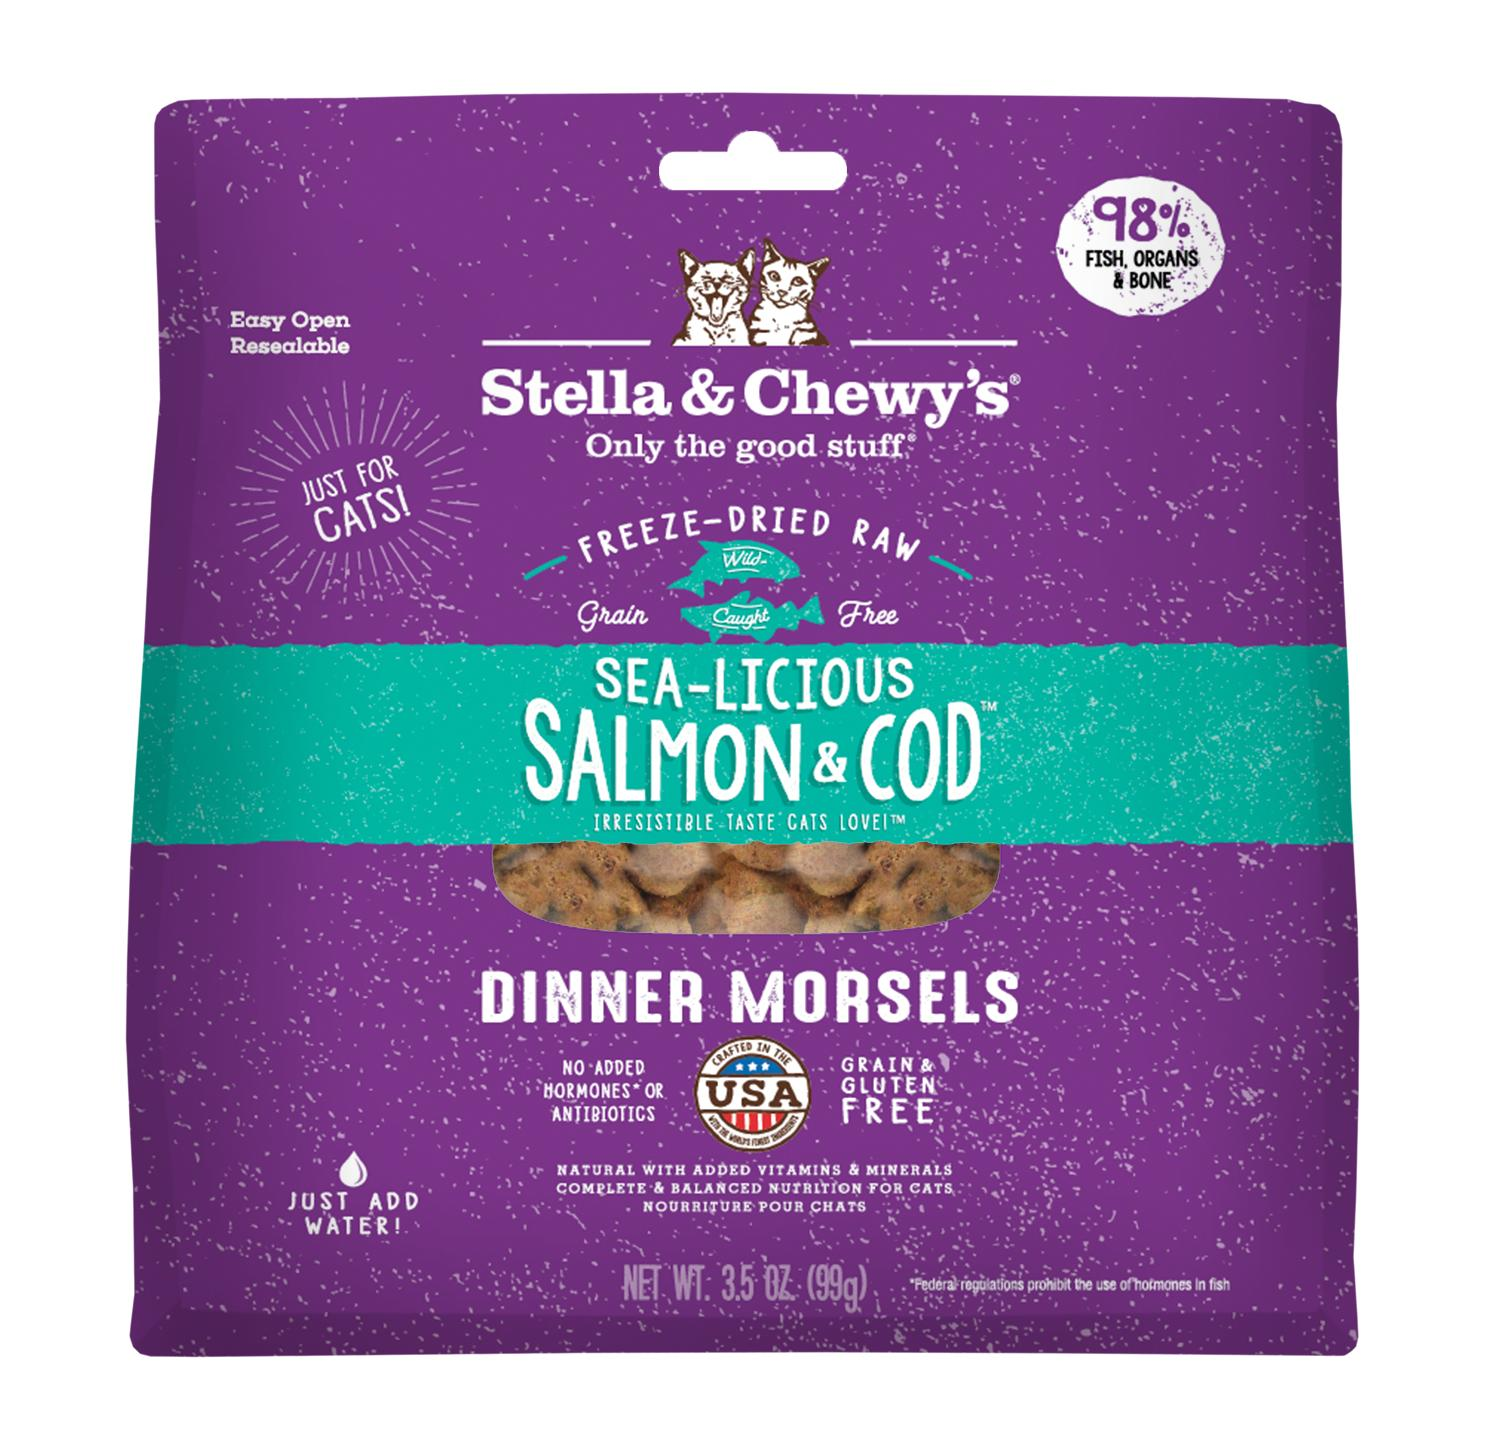 Stella & Chewy's Sea-licious Salmon & Cod Dinner Grain-Free Freeze-Dried Cat Food Image